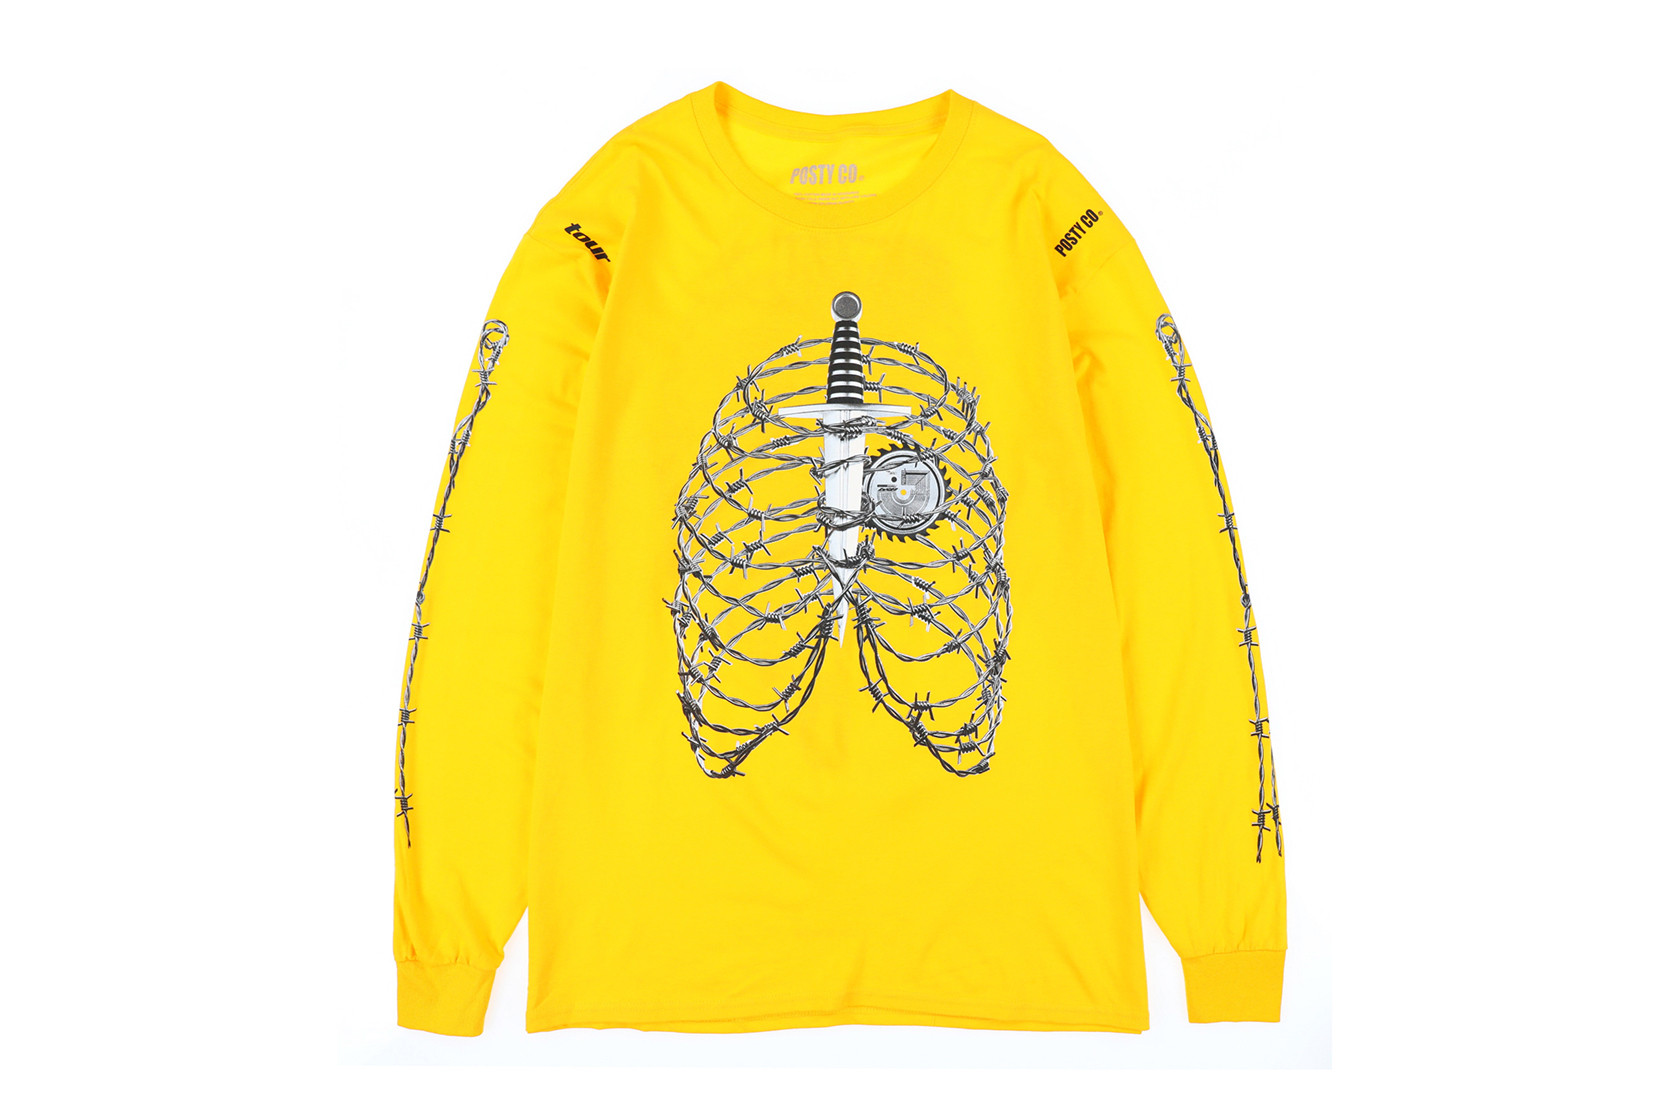 Post Malone Collaborates with NUBIAN for a Unique Merchandise Capsule